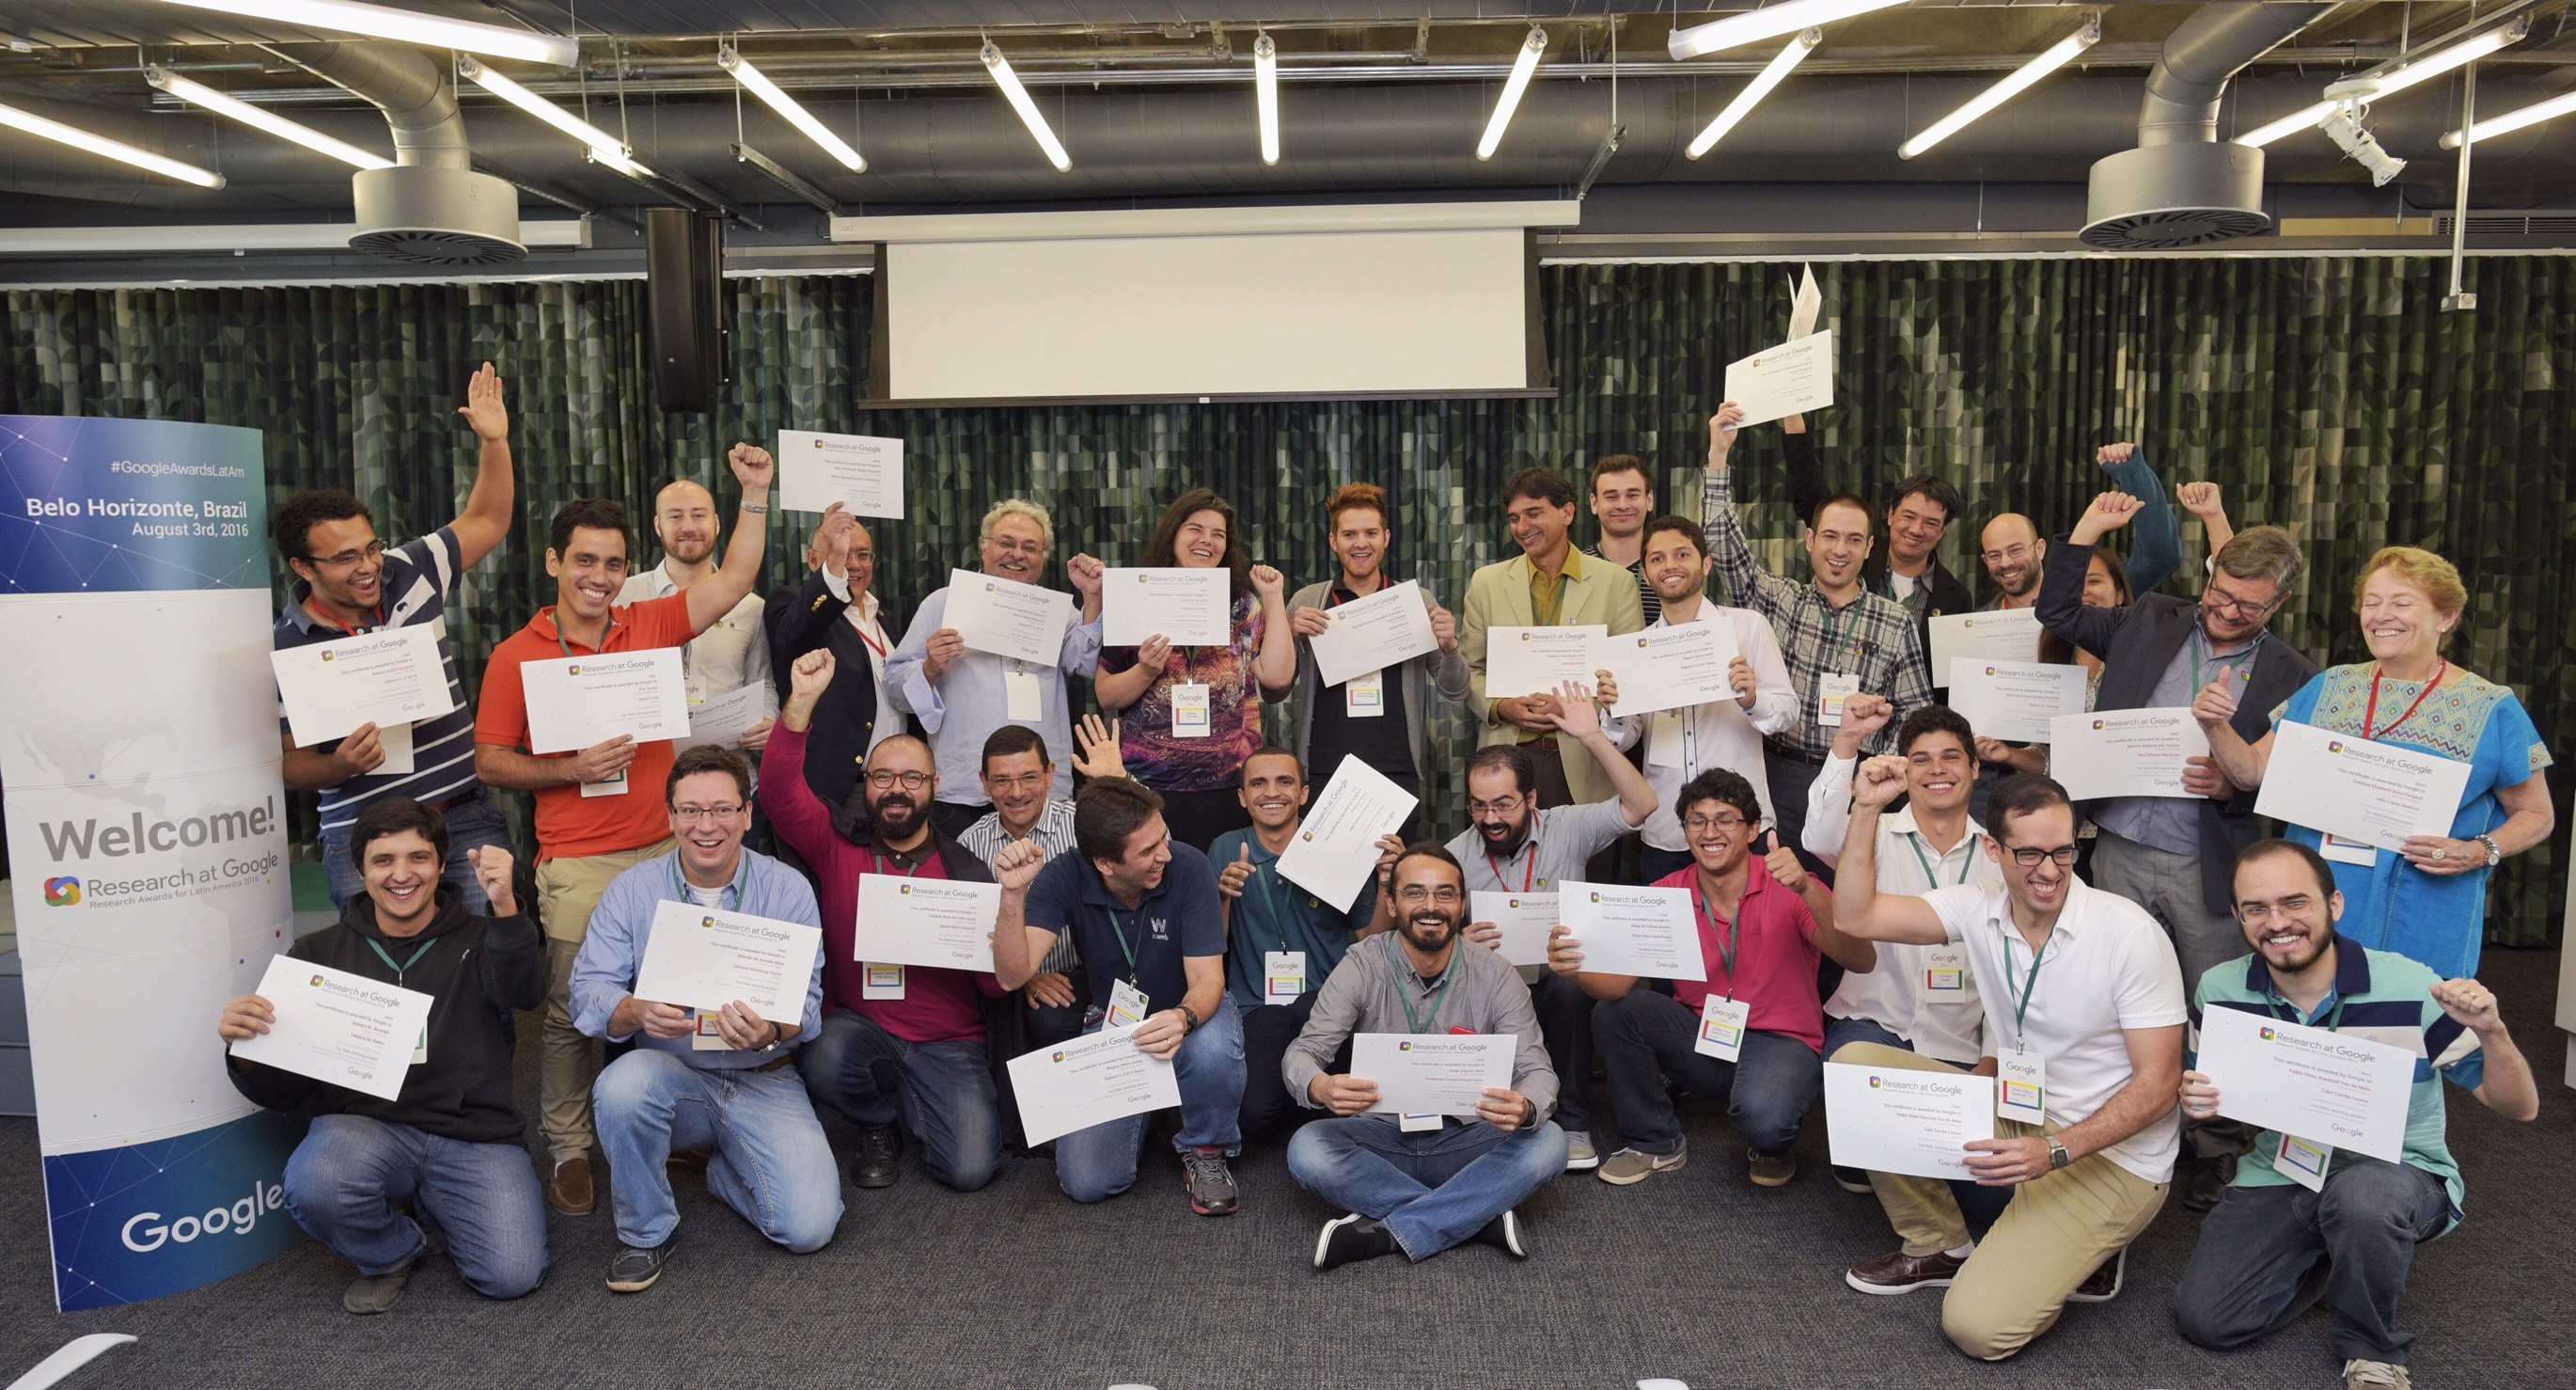 Os vencedores do Google Research Awards de 2016 (Foto: Divulgação)